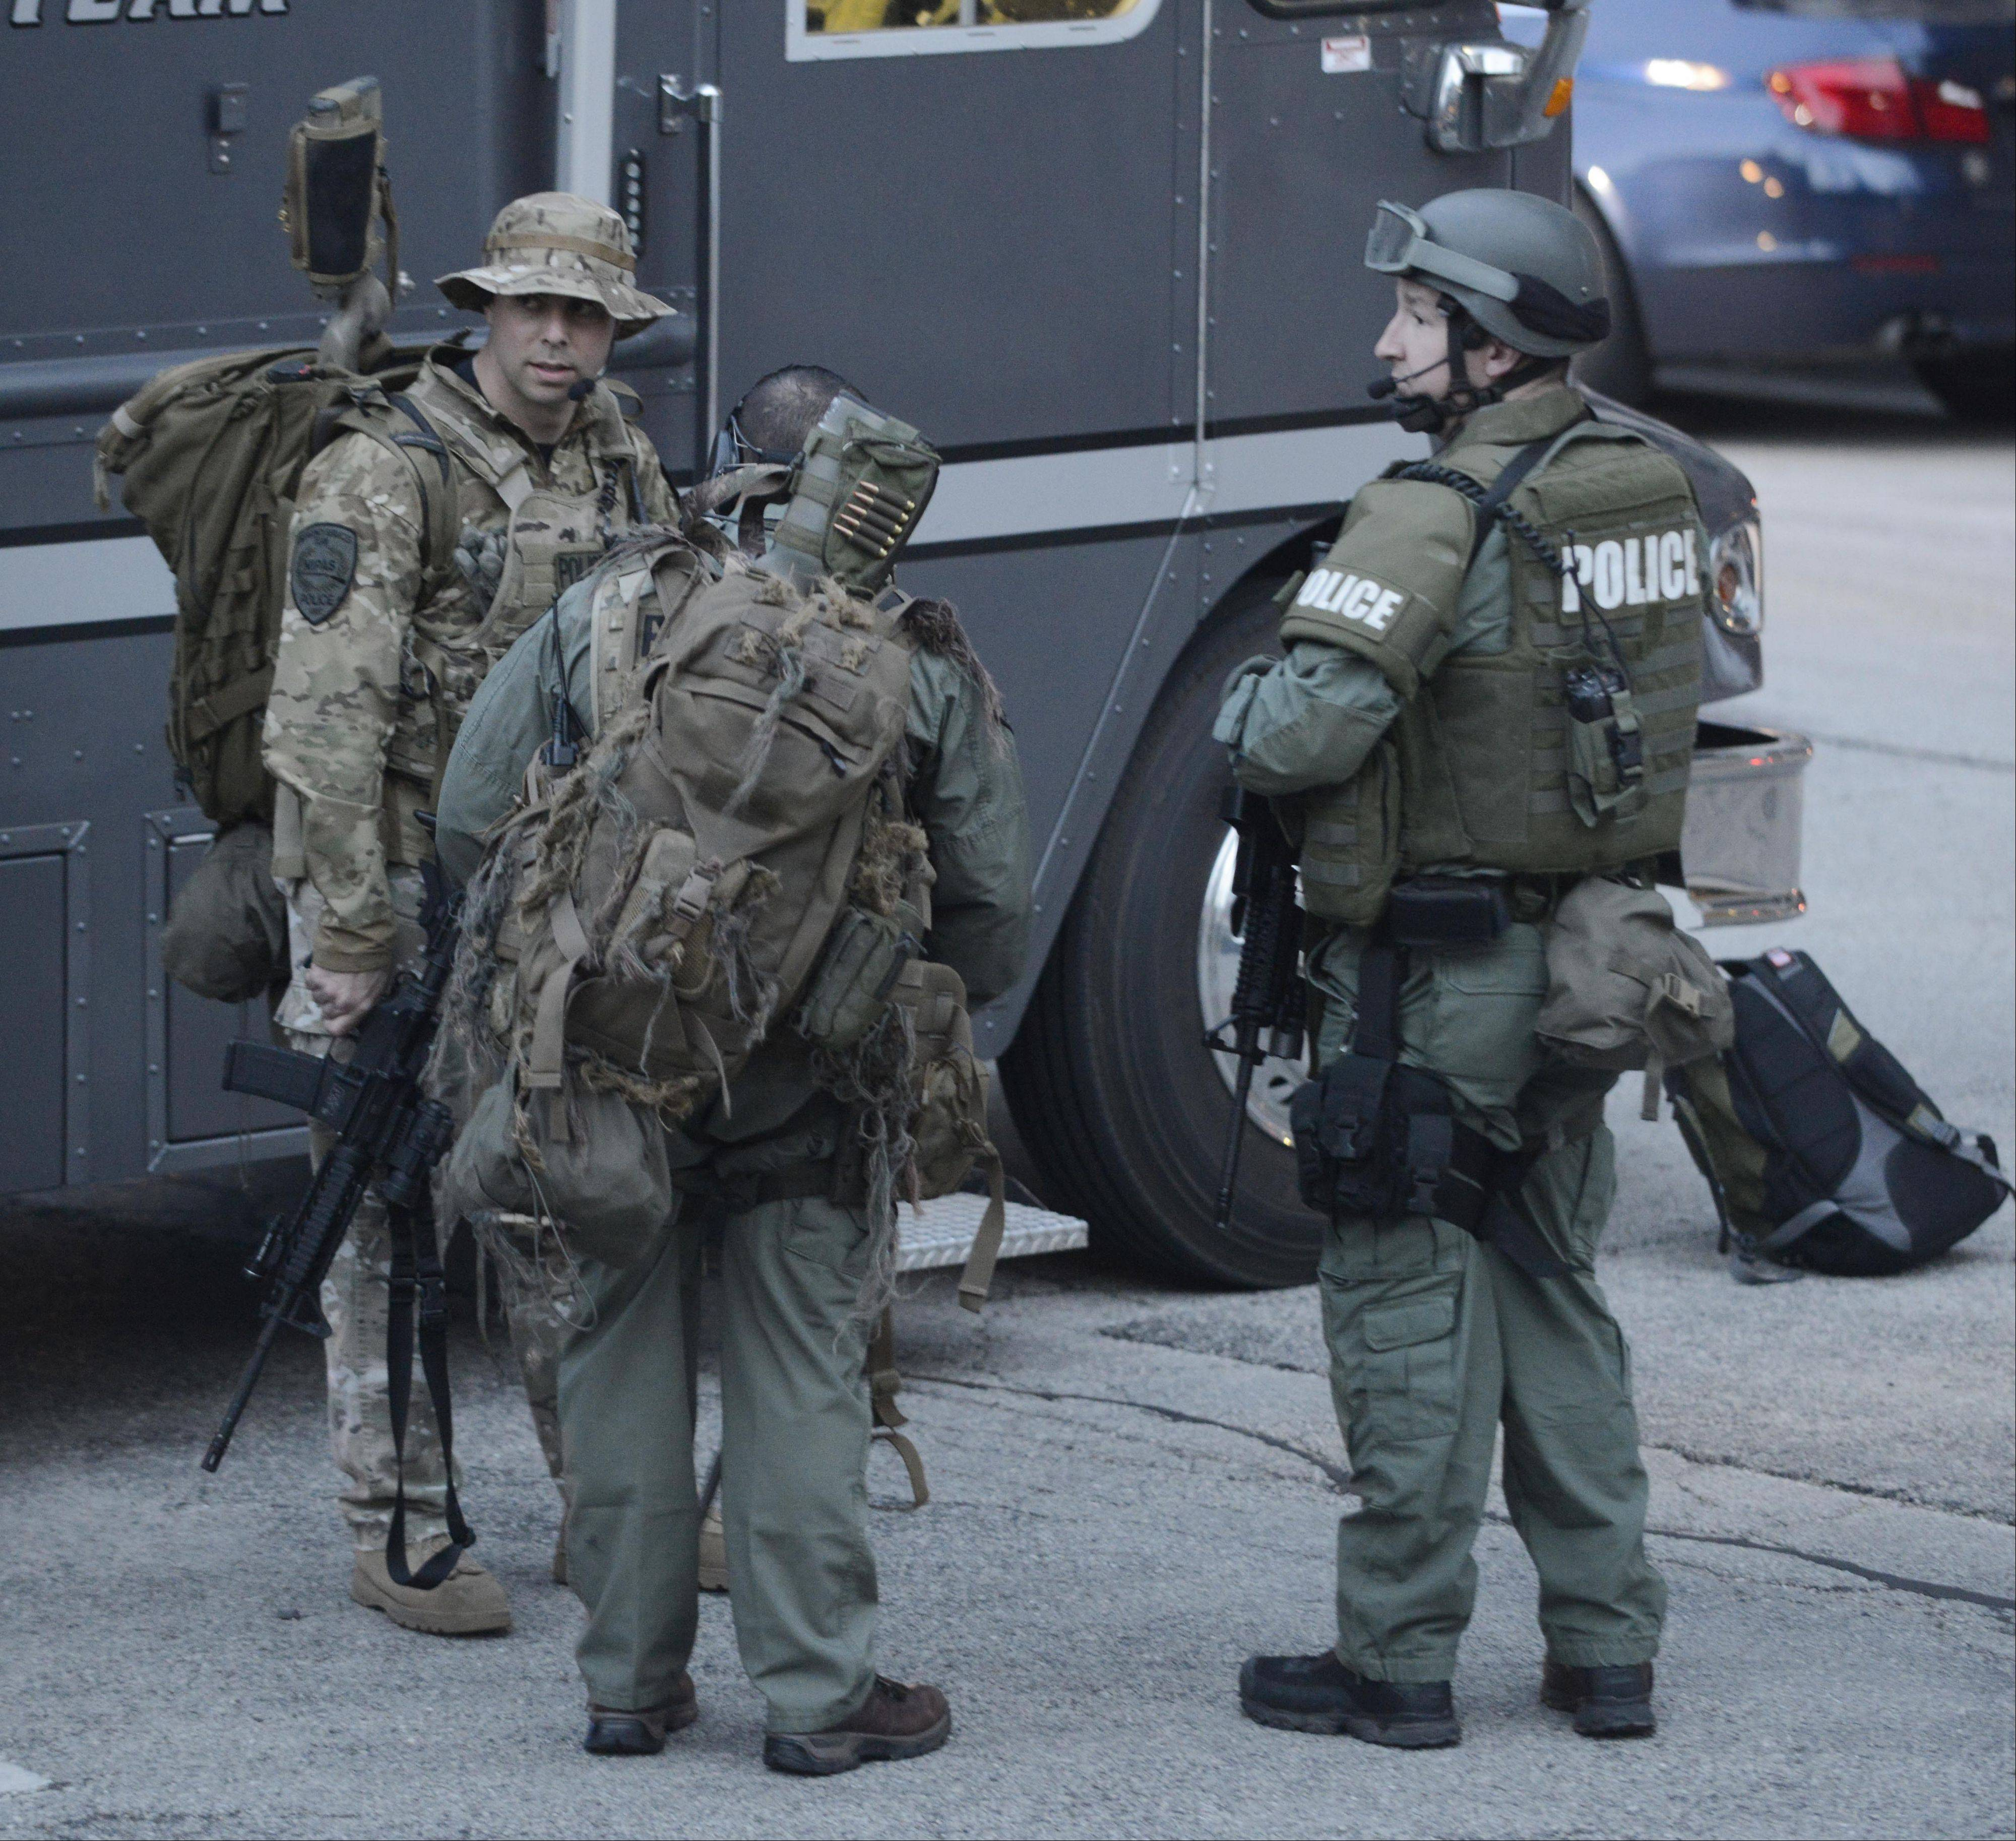 Heavily-armed officers gather at the conclusion of the May 4 police standoff in Arlington Heights.